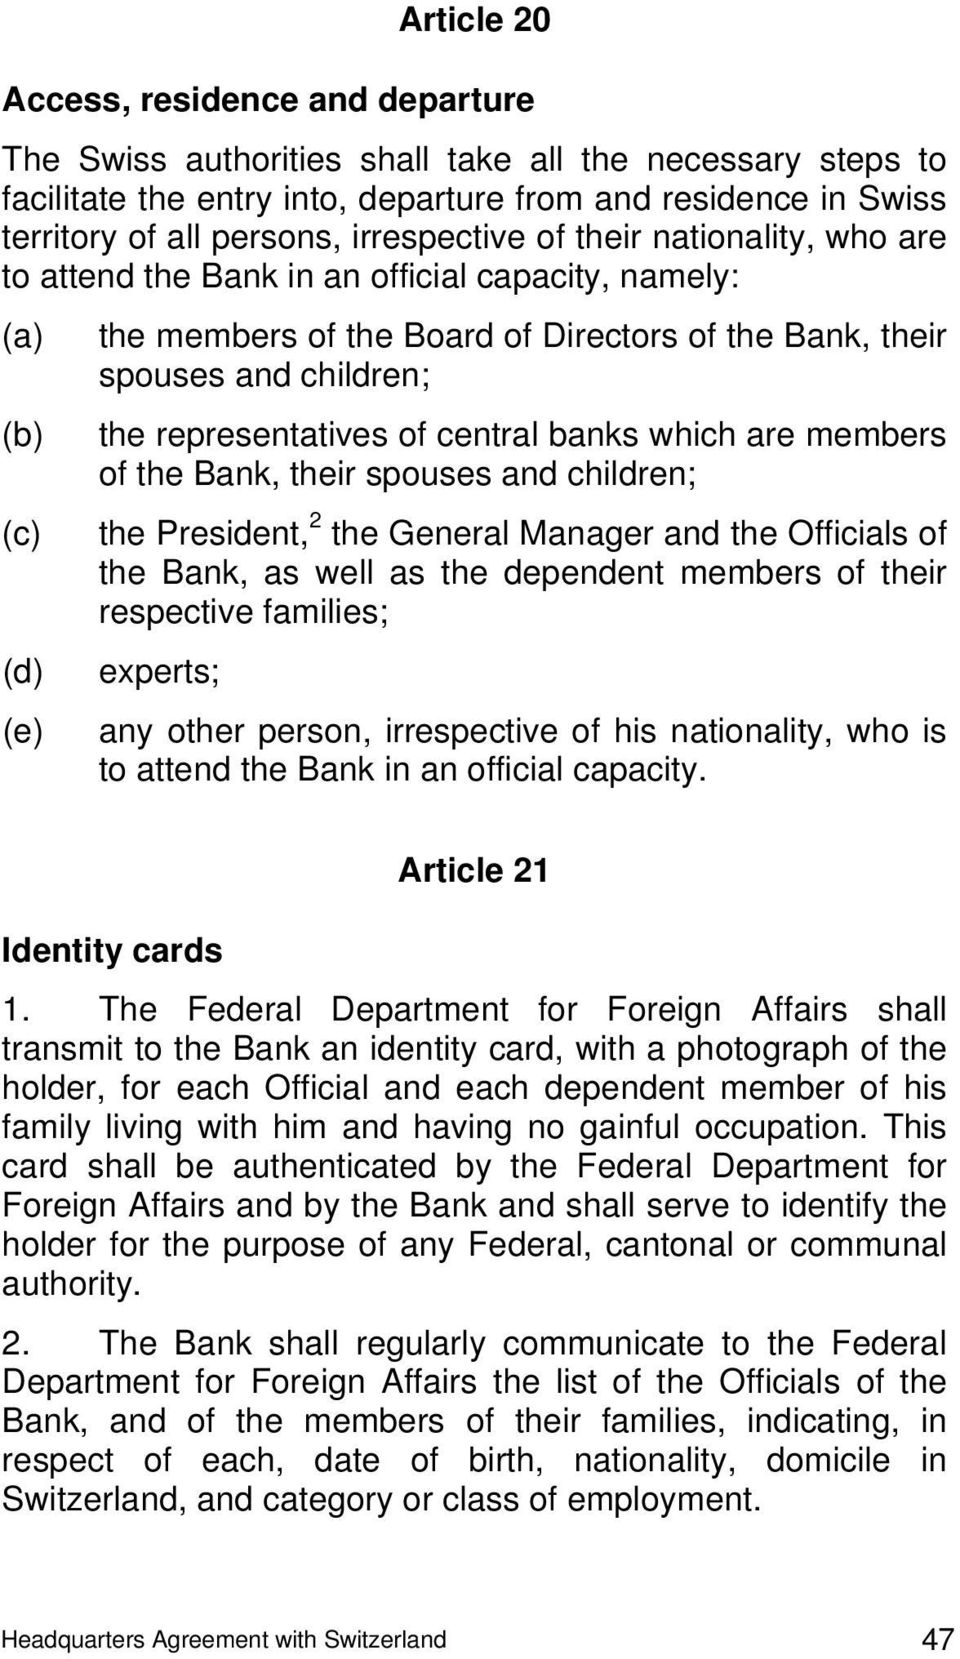 representatives of central banks which are members of the Bank, their spouses and children; (c) the President, 2 the General Manager and the Officials of the Bank, as well as the dependent members of